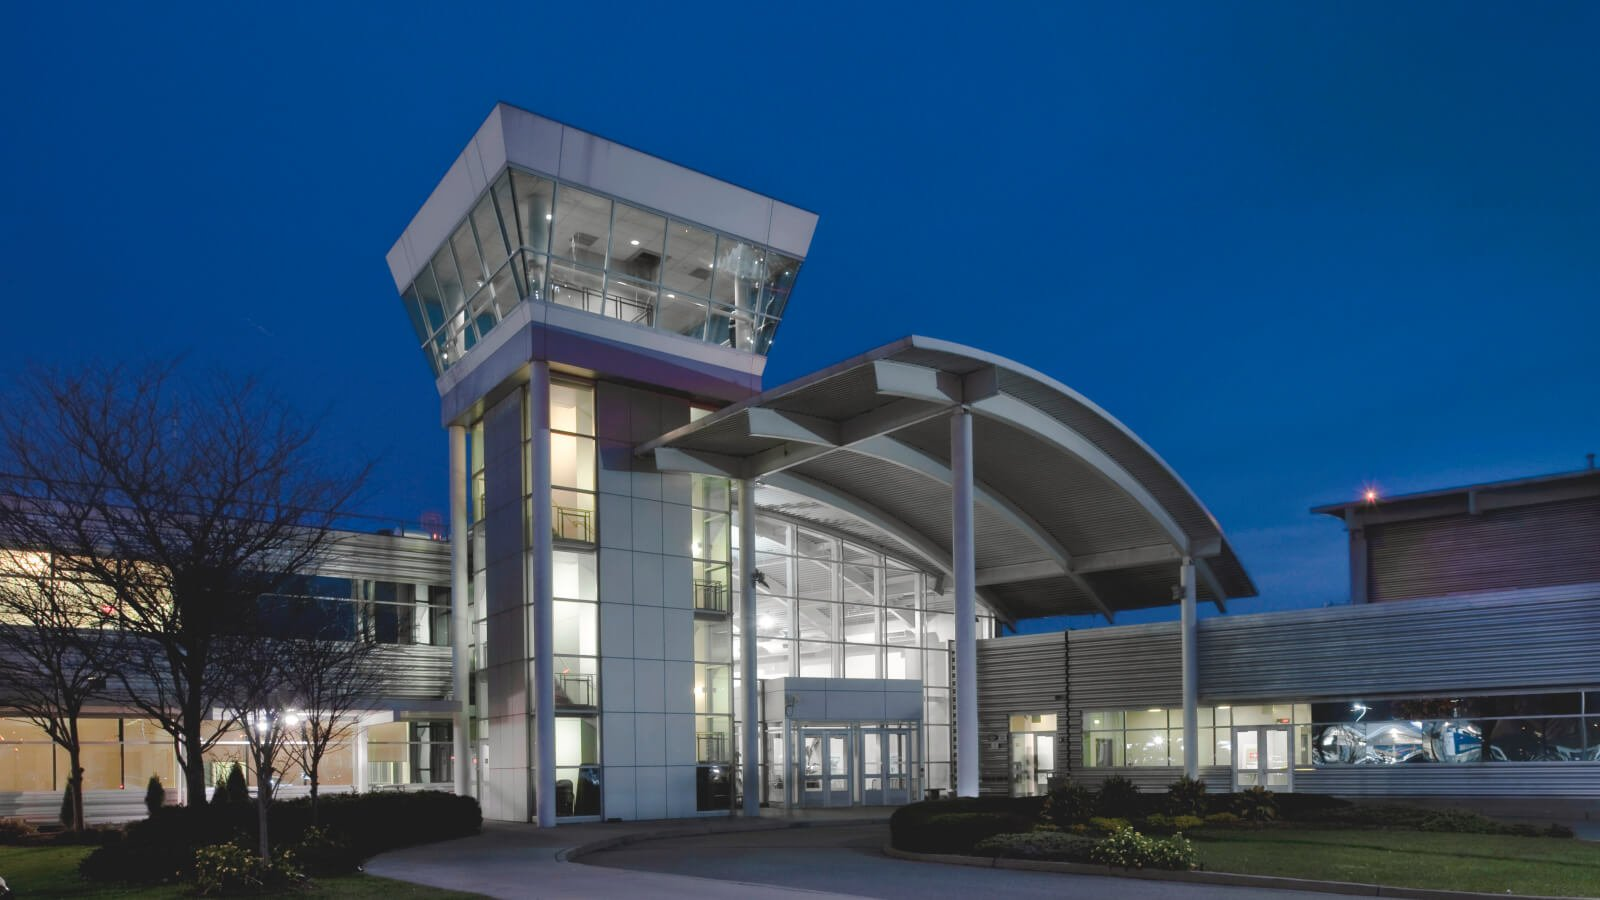 Vaughn College of Aeronautics and Technology